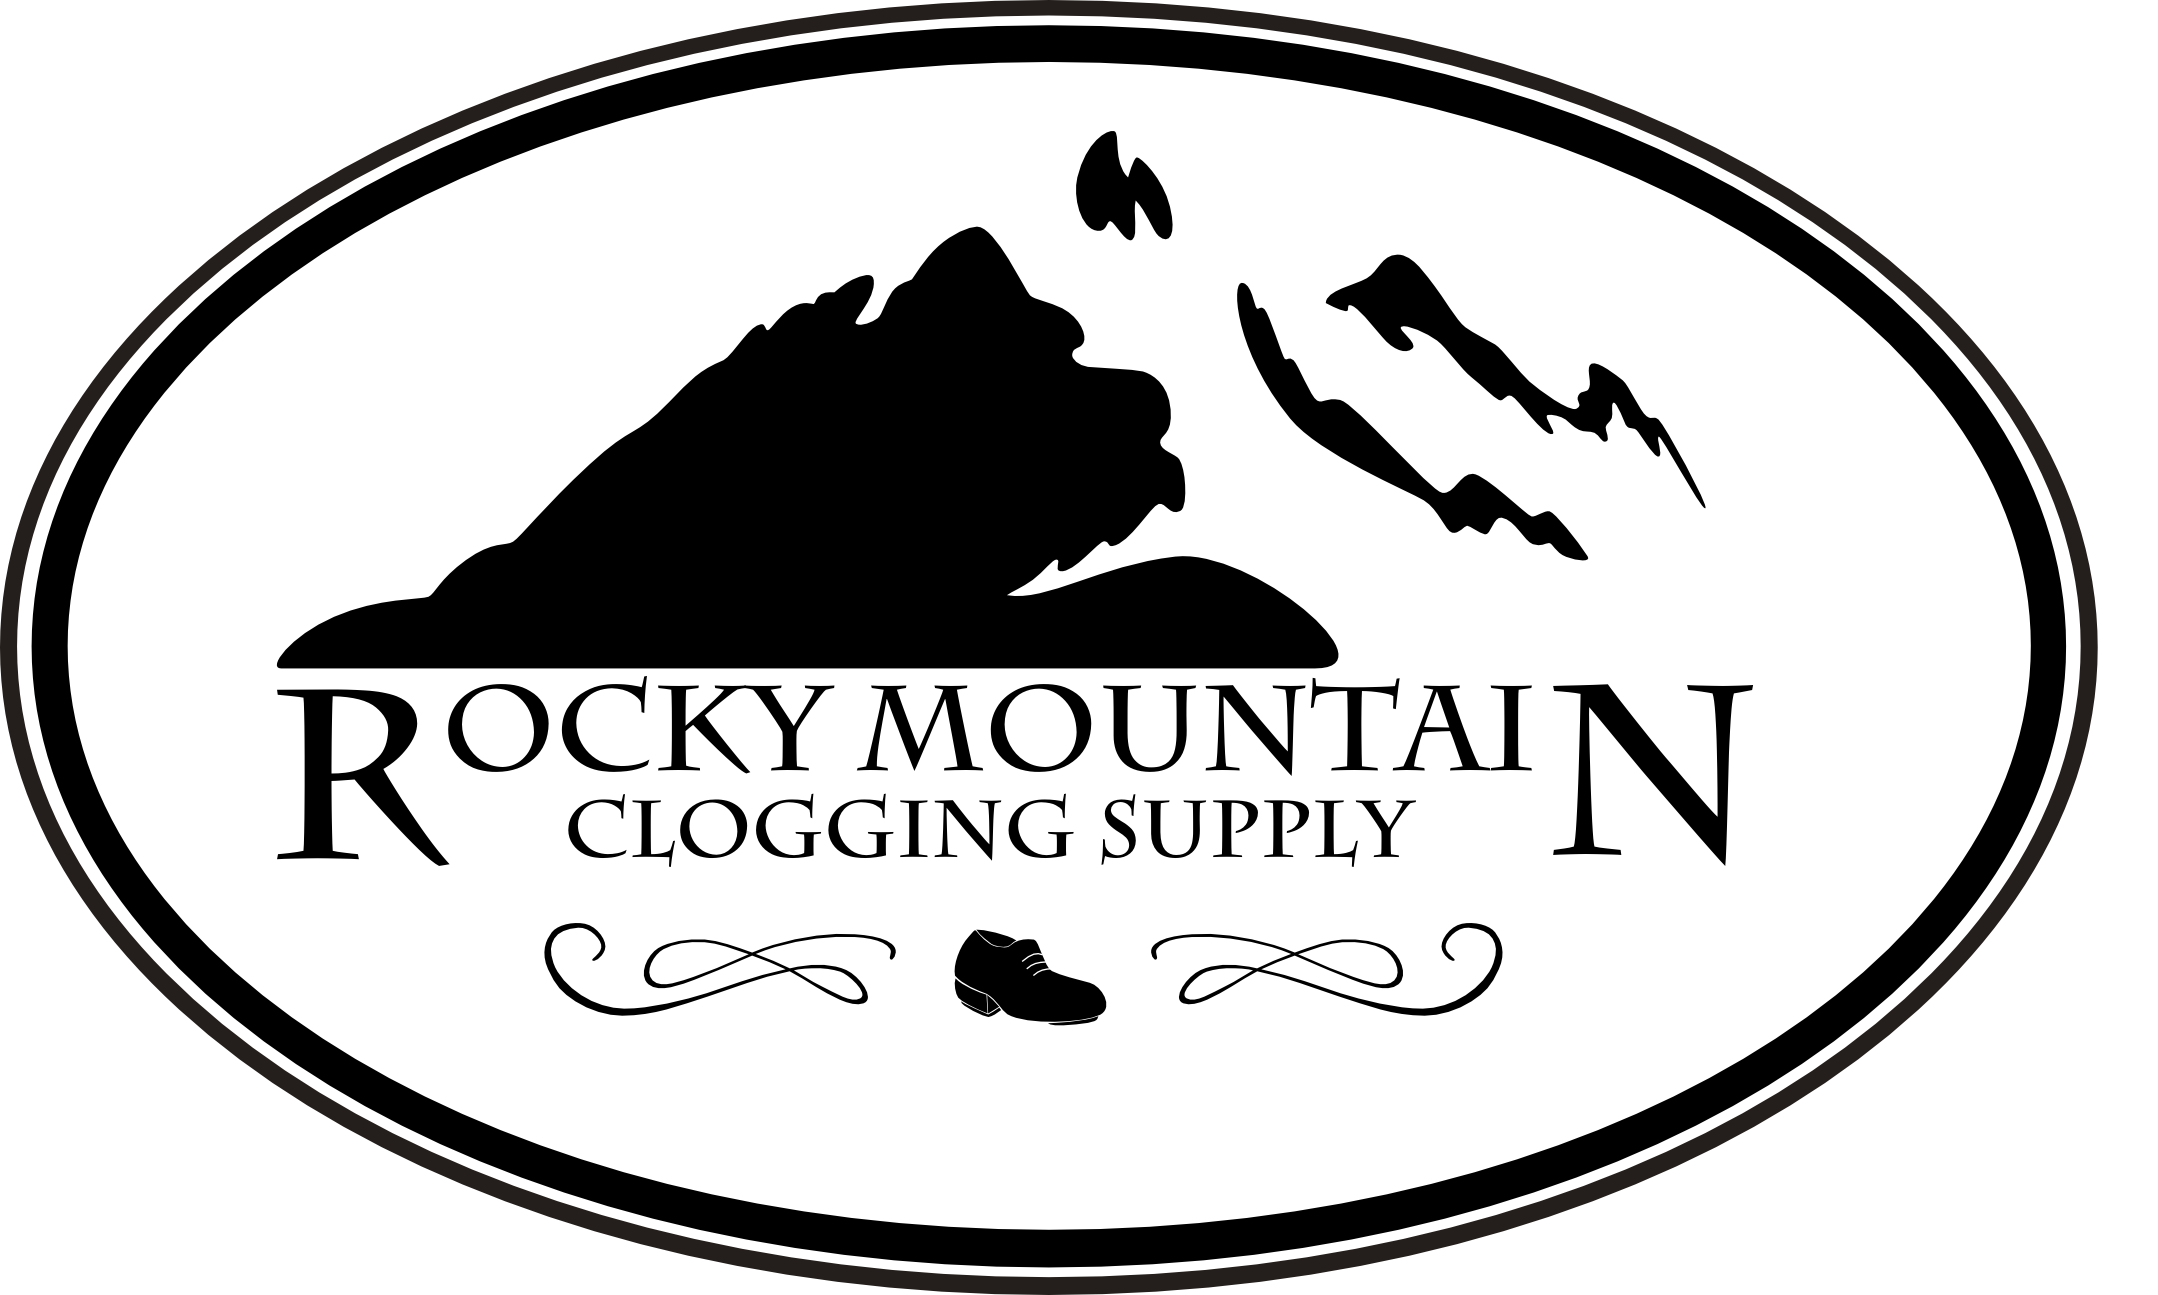 Rocky Mountain Clogging Supply